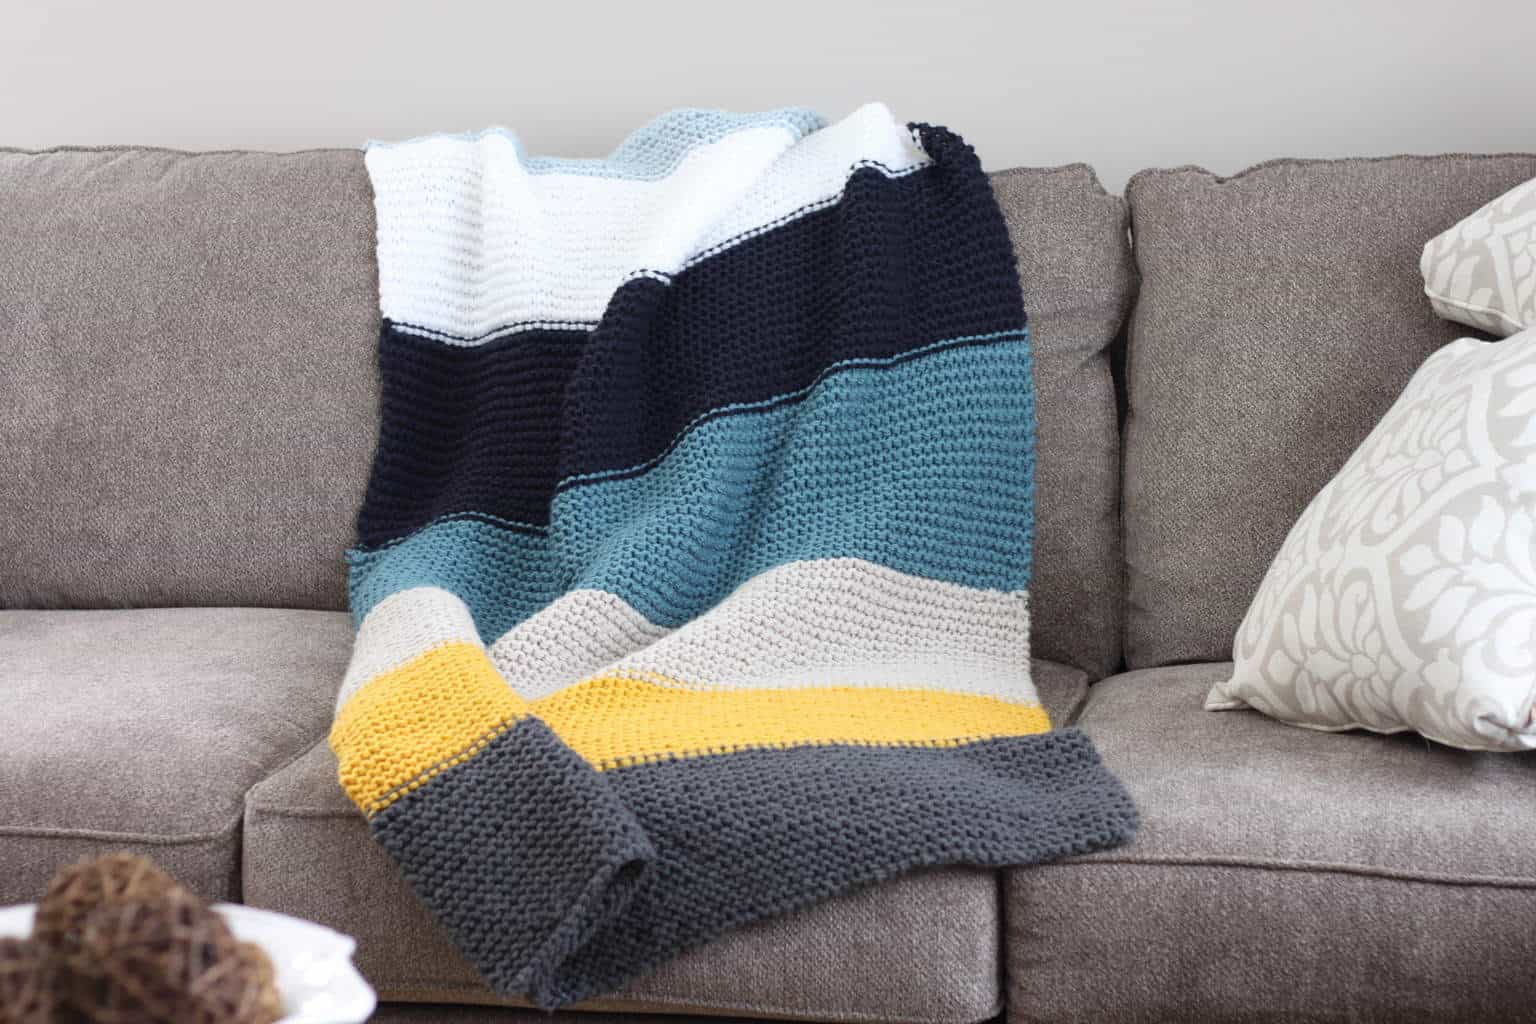 How to knit a blanket pattern